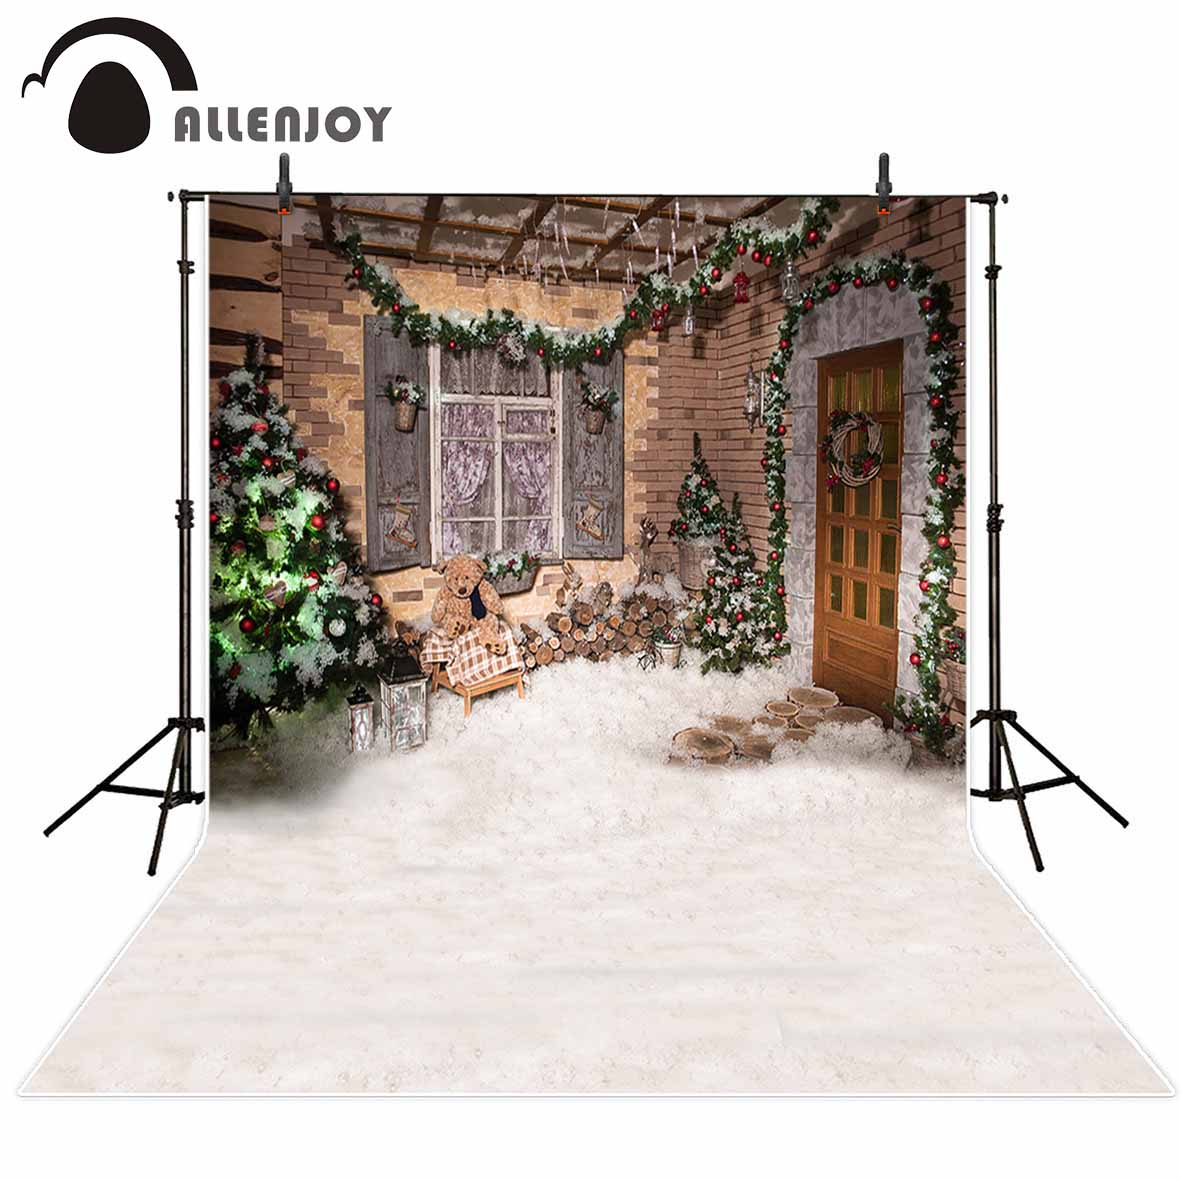 Allenjoy photography backdrop Snow winter house Christmas tree party children new background photocall customize photo printed